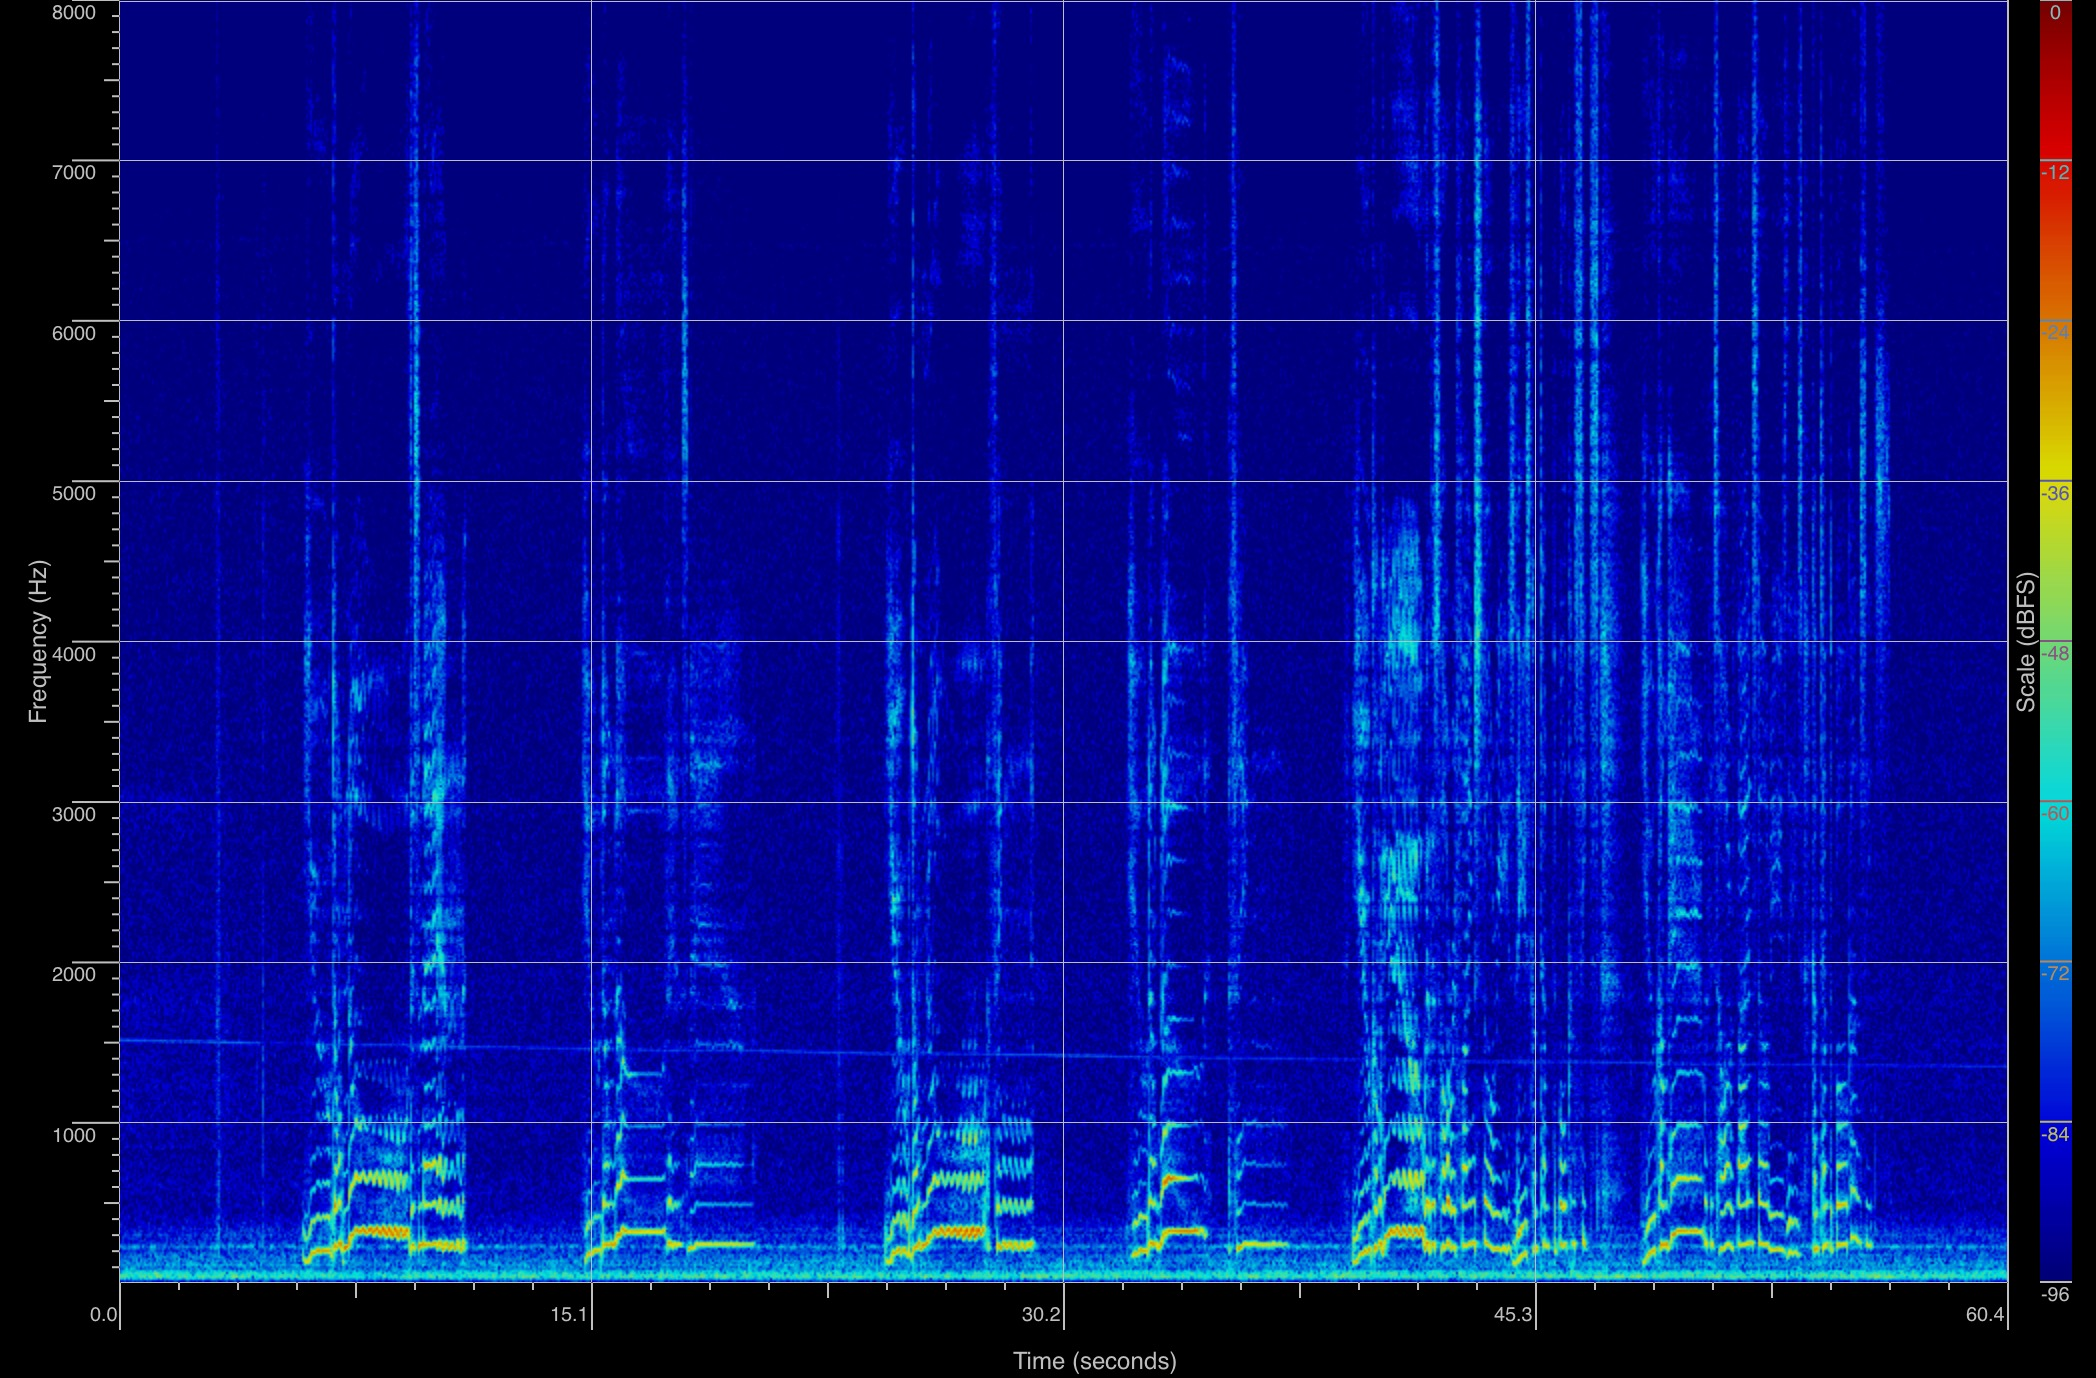 spectrocram screenshot MT vs jazz voice production